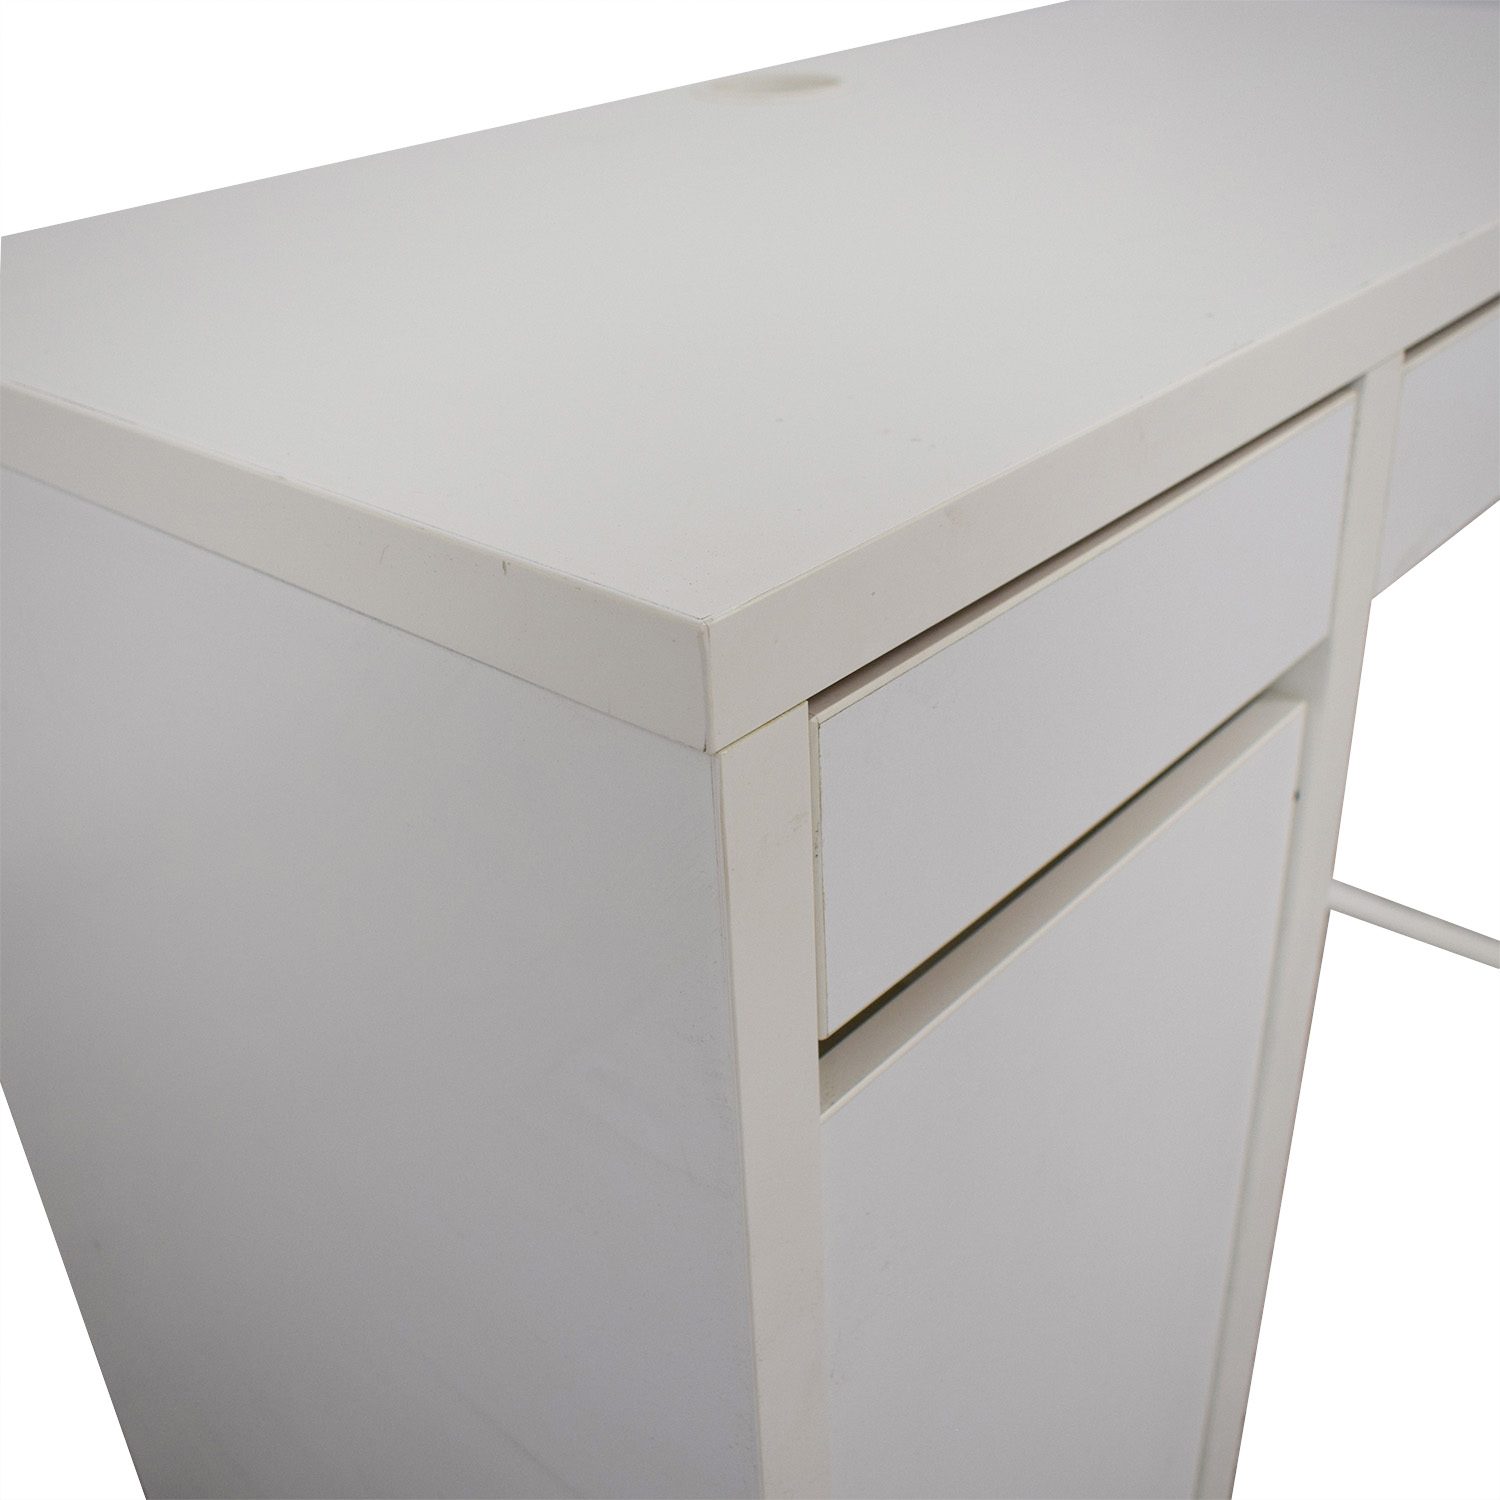 White Desk with Side Cabinet dimensions